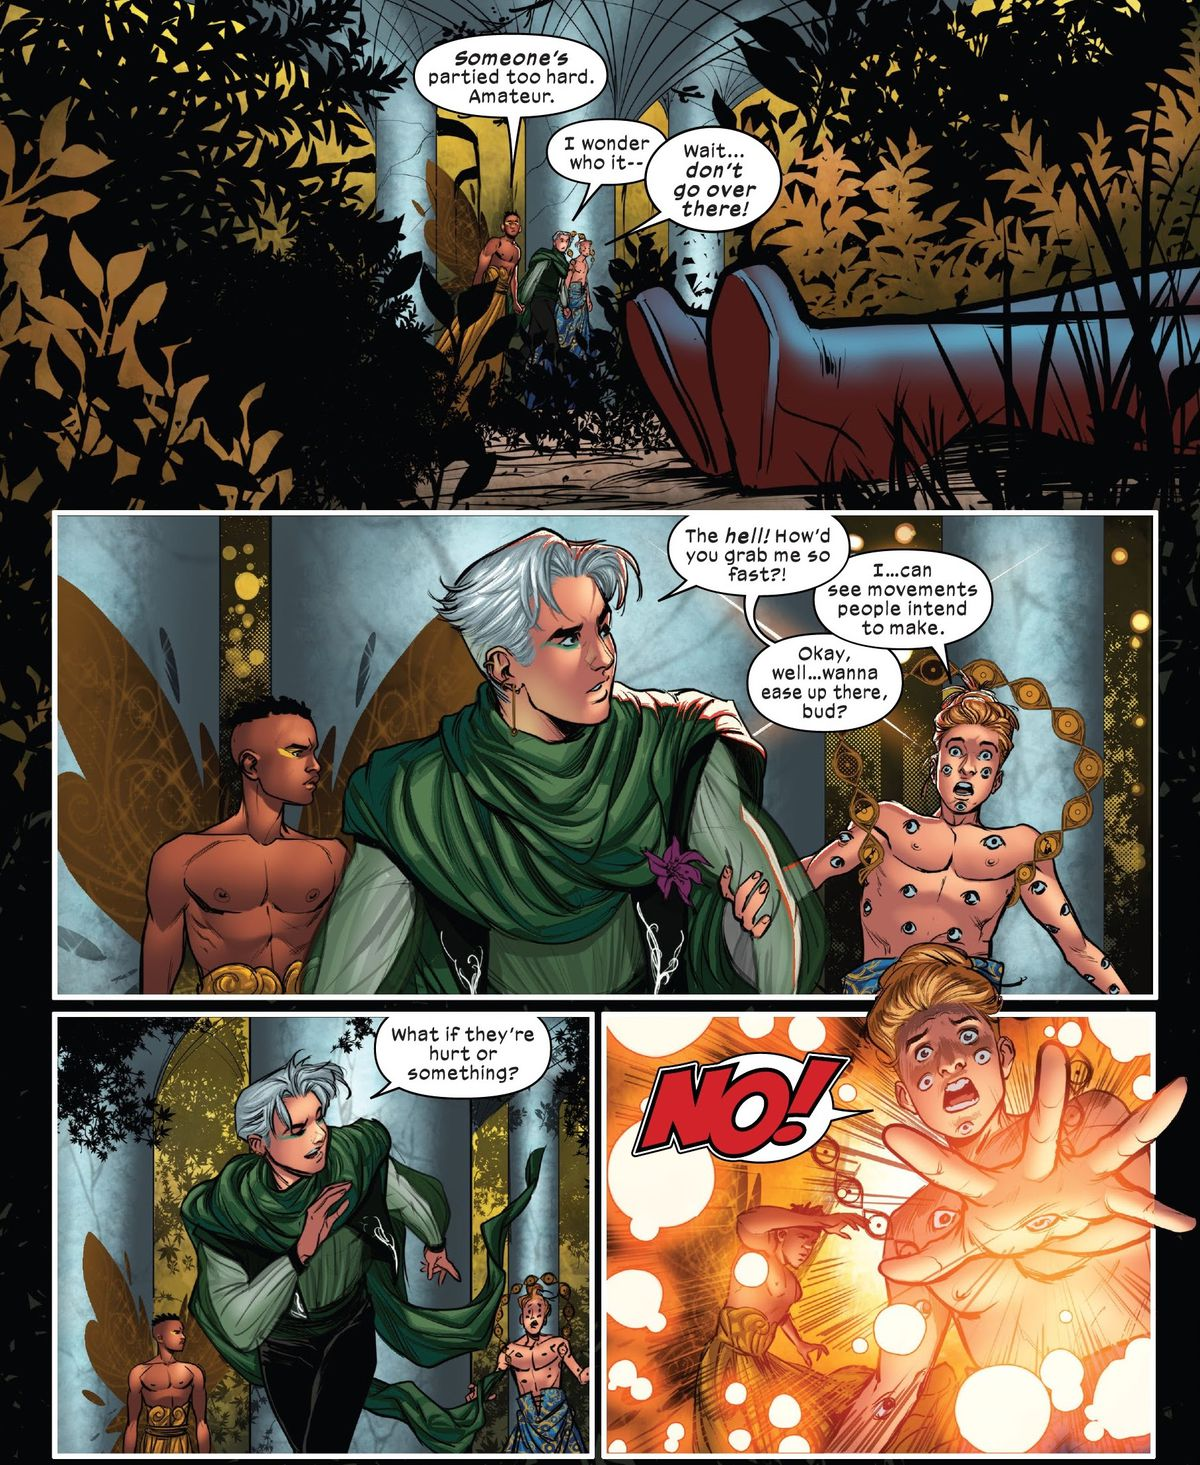 Eyeboy, Speed, and Prodigy come across the red boots of someone apparently passed out in a Krakoan garden. Eyeboy tries desperately to keep Speed from going any closer in X-Factor #10 (2021).